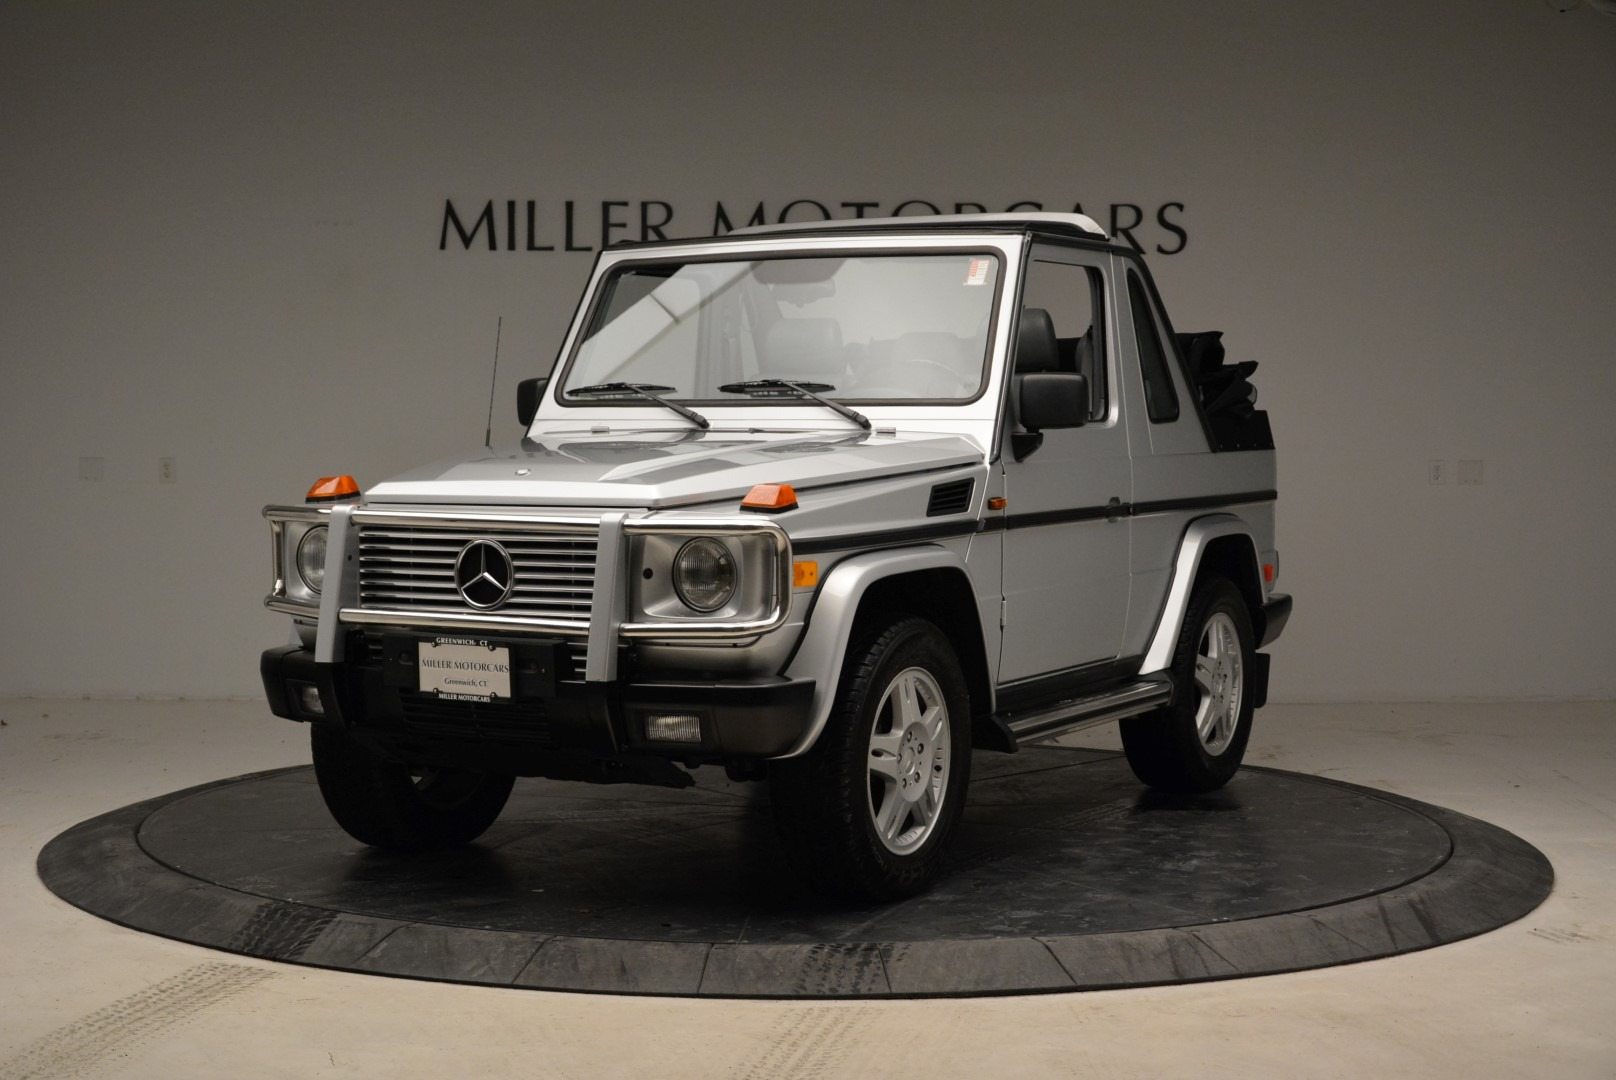 Used 1999 Mercedes Benz G500 Cabriolet for sale Sold at Bentley Greenwich in Greenwich CT 06830 1